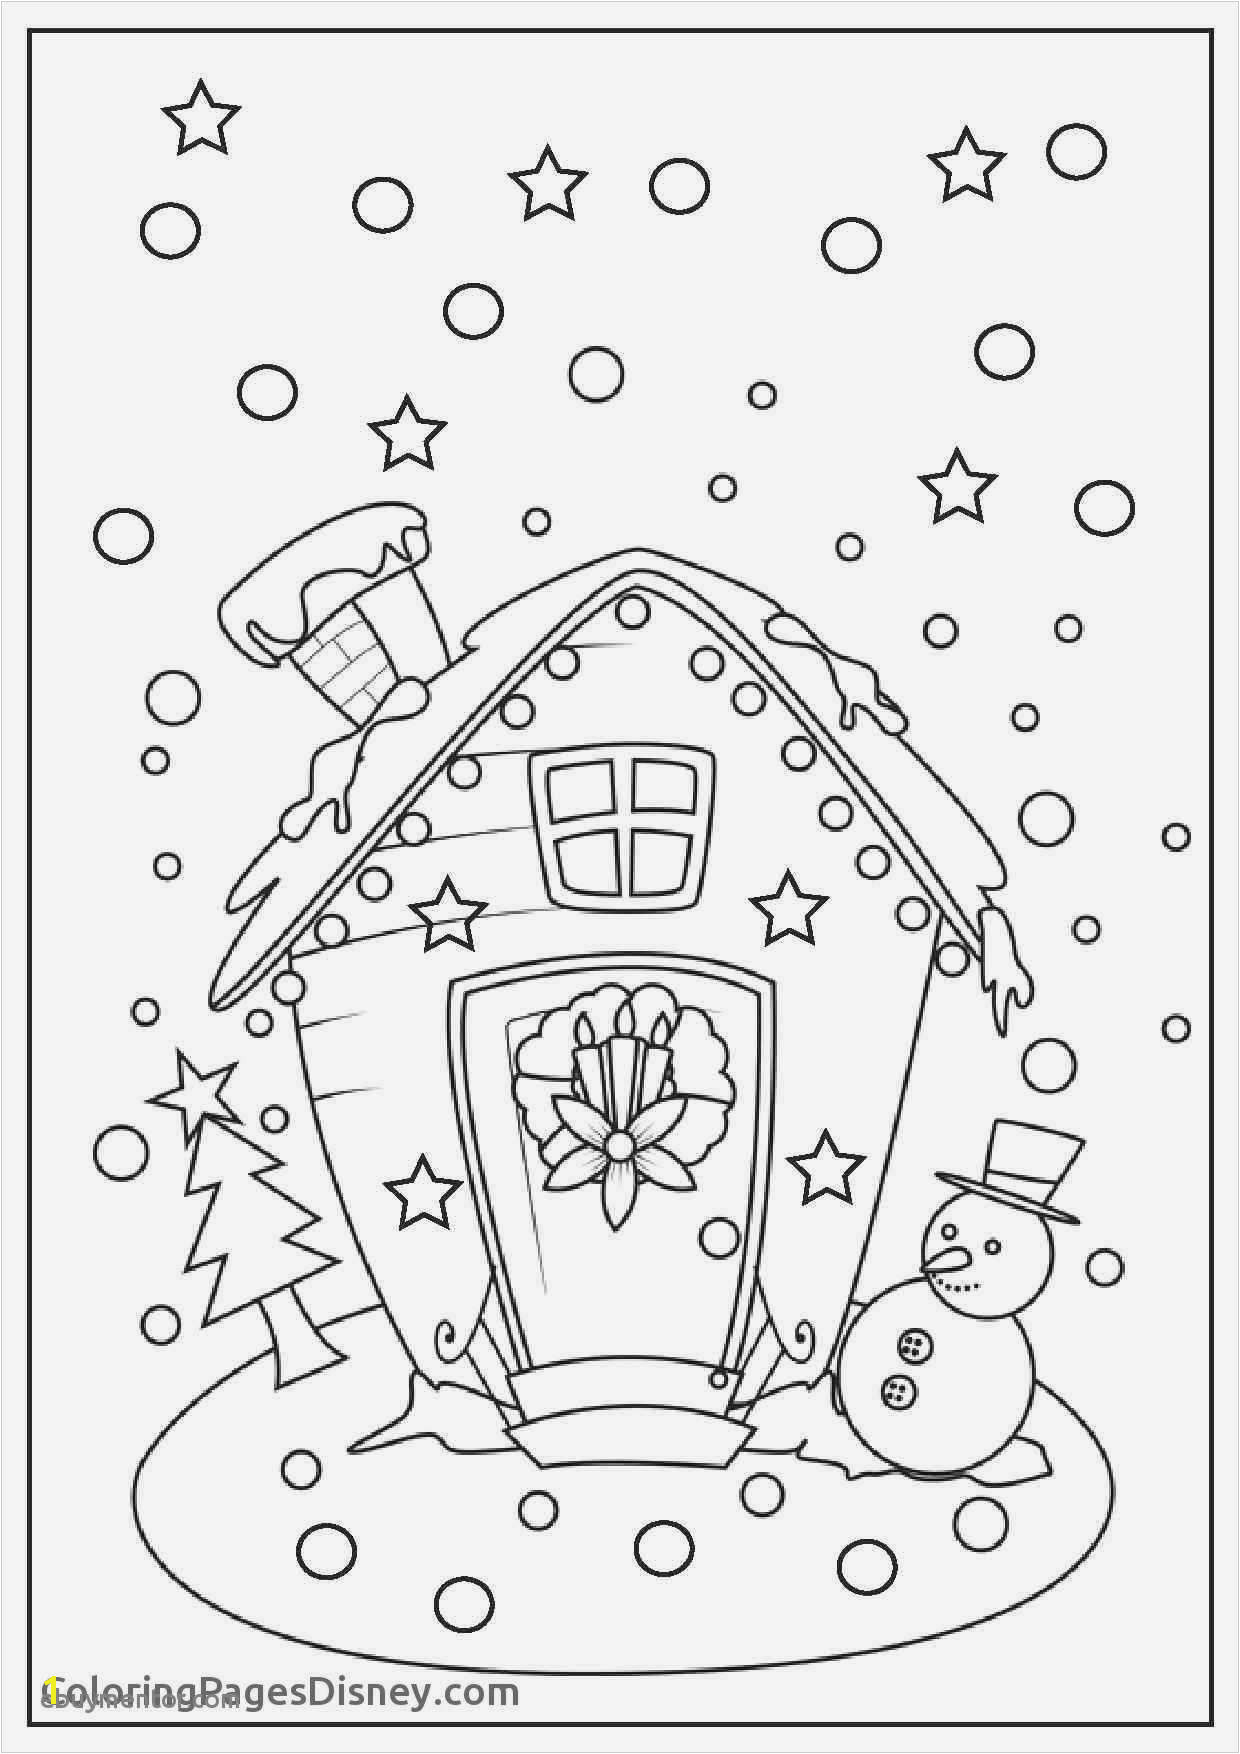 Free Christmas Coloring Pages for Kids Cool Coloring Printables 0d Inspiration Von Weihnachten österreich 2018